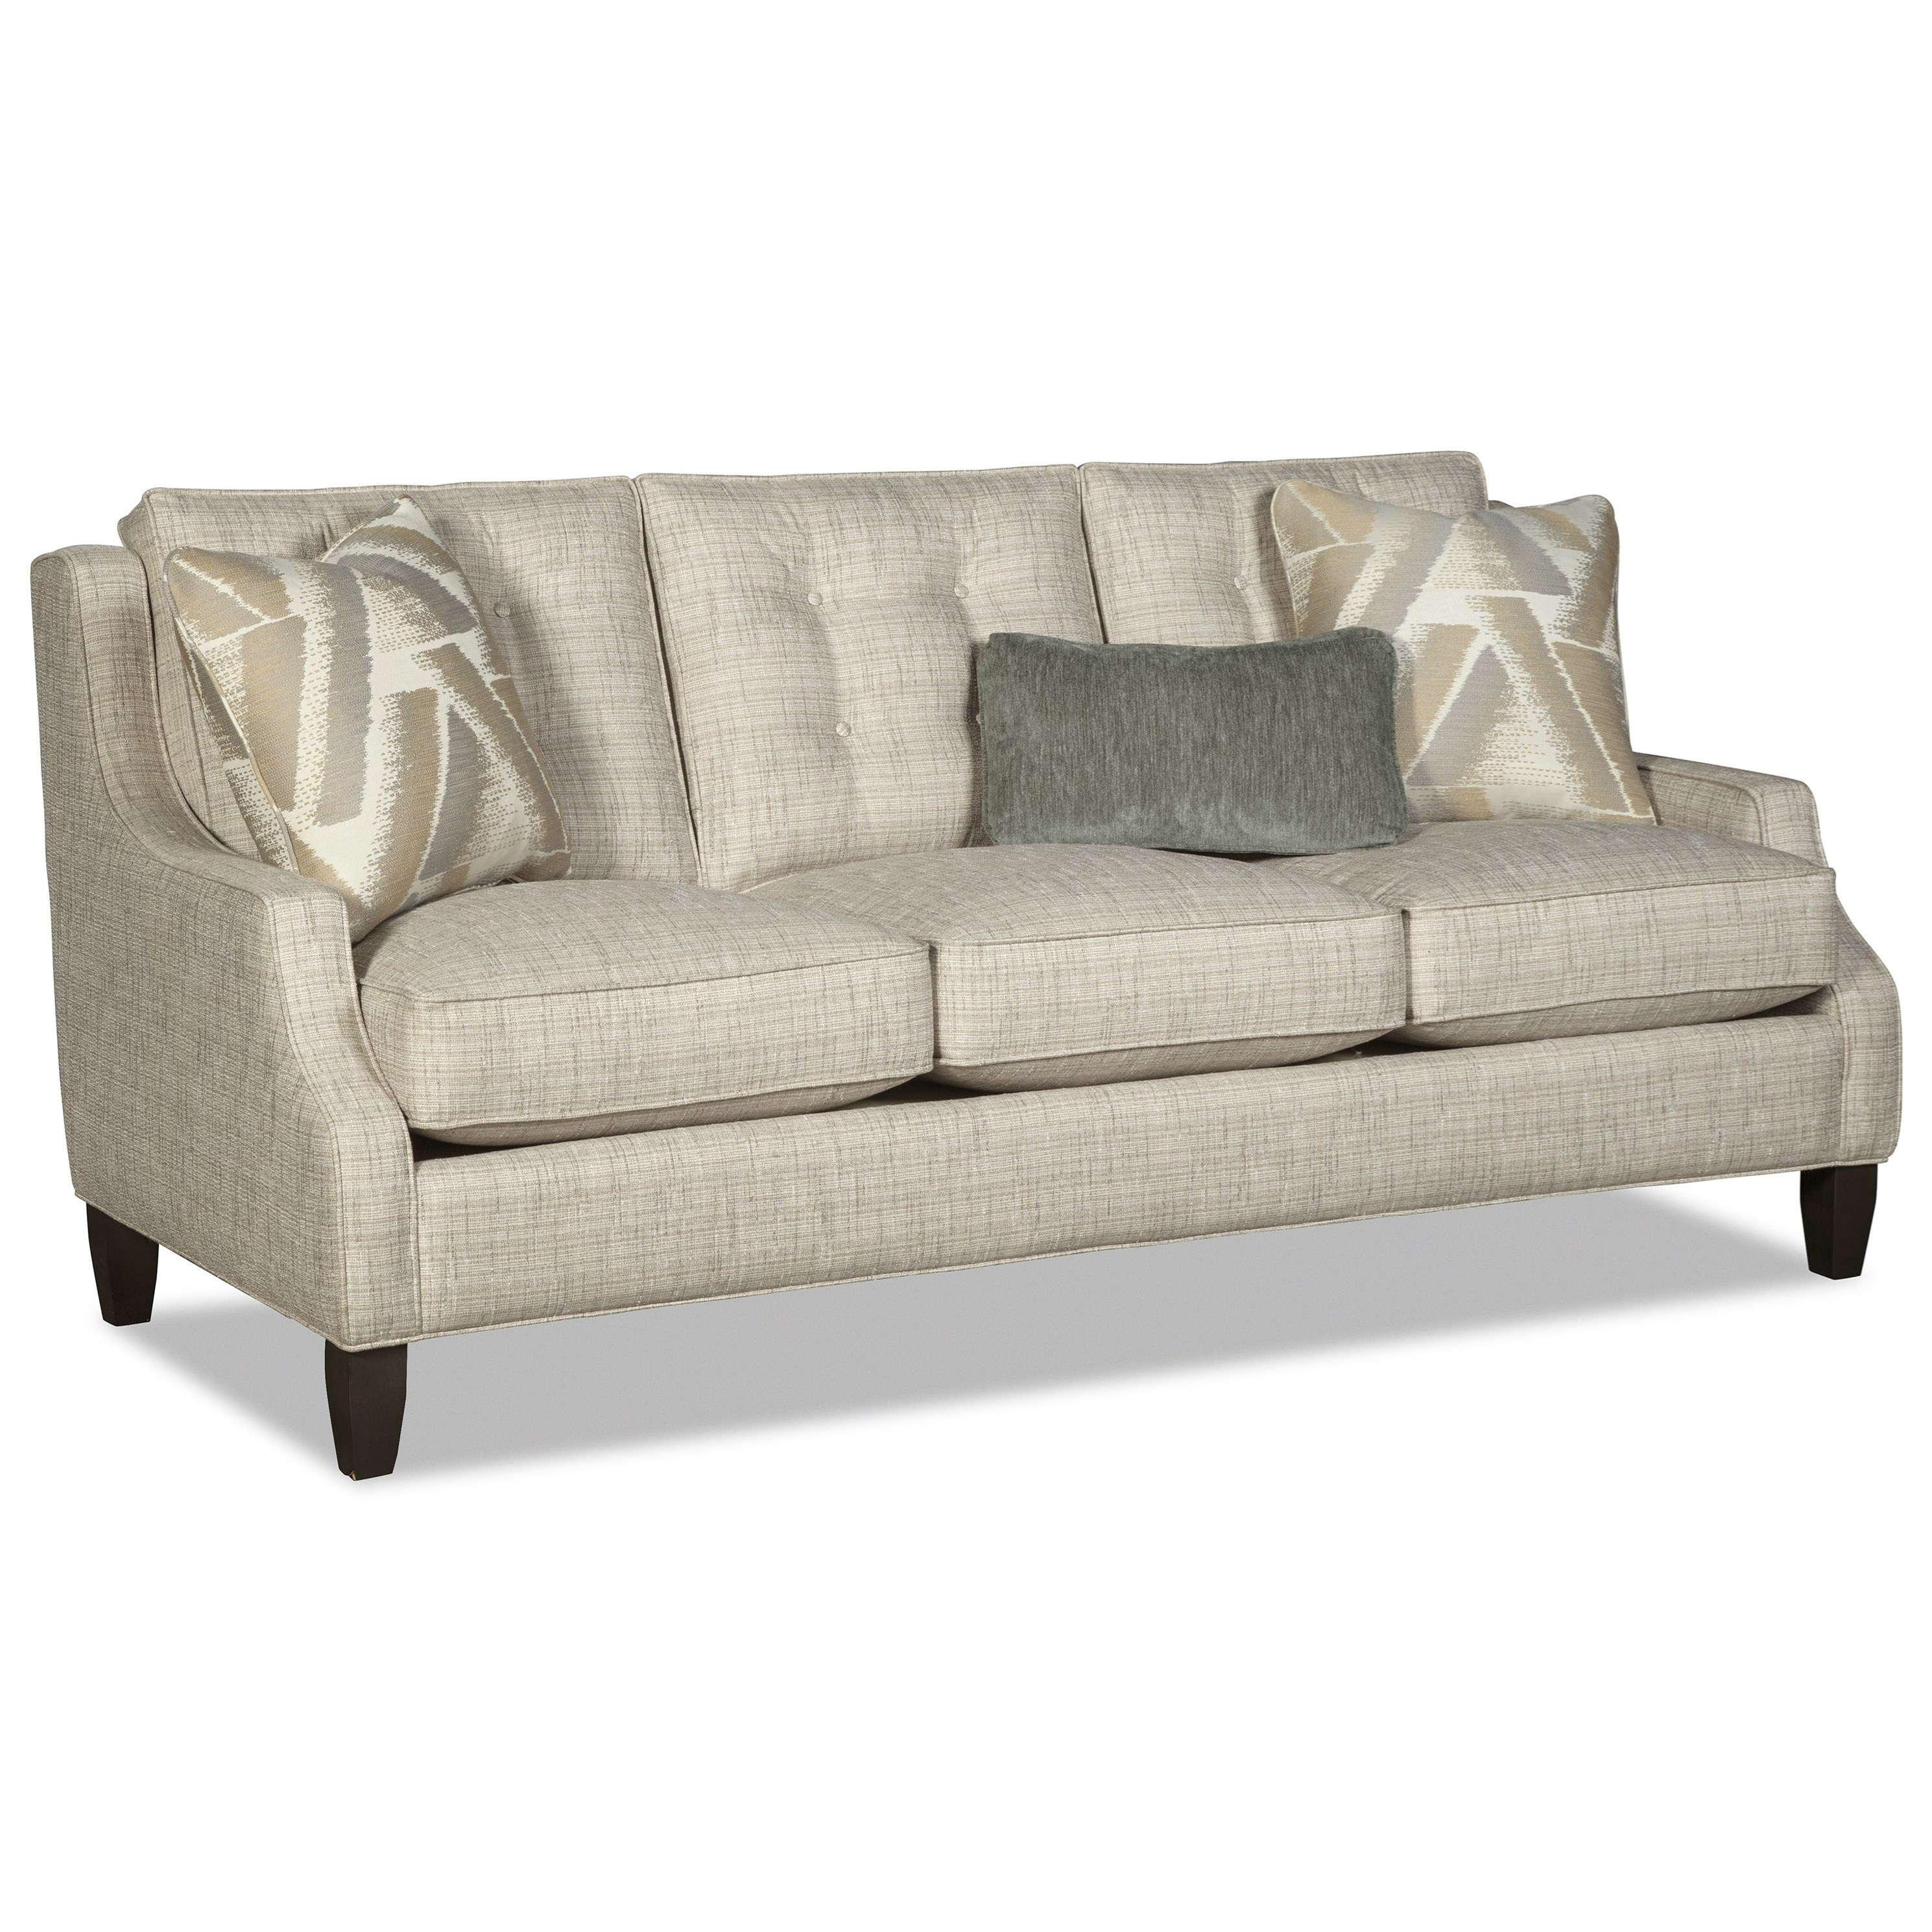 700750BD Sofa by Craftmaster at Prime Brothers Furniture